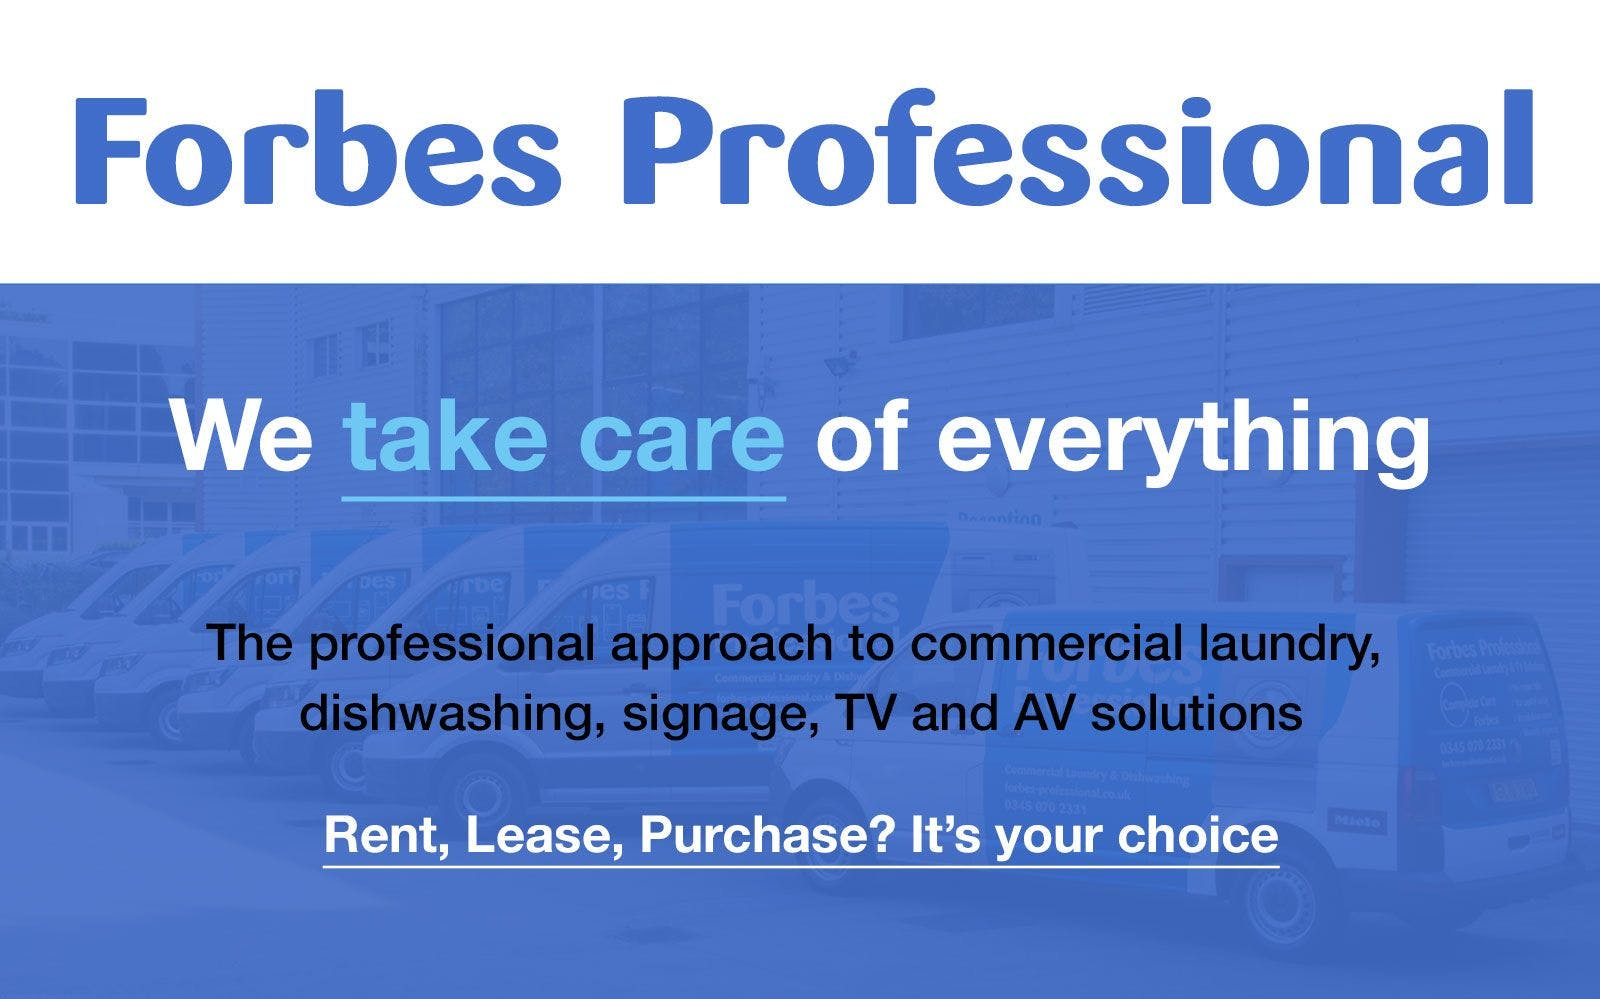 Forbes Professional announces further expansion within the commercial laundry sector.